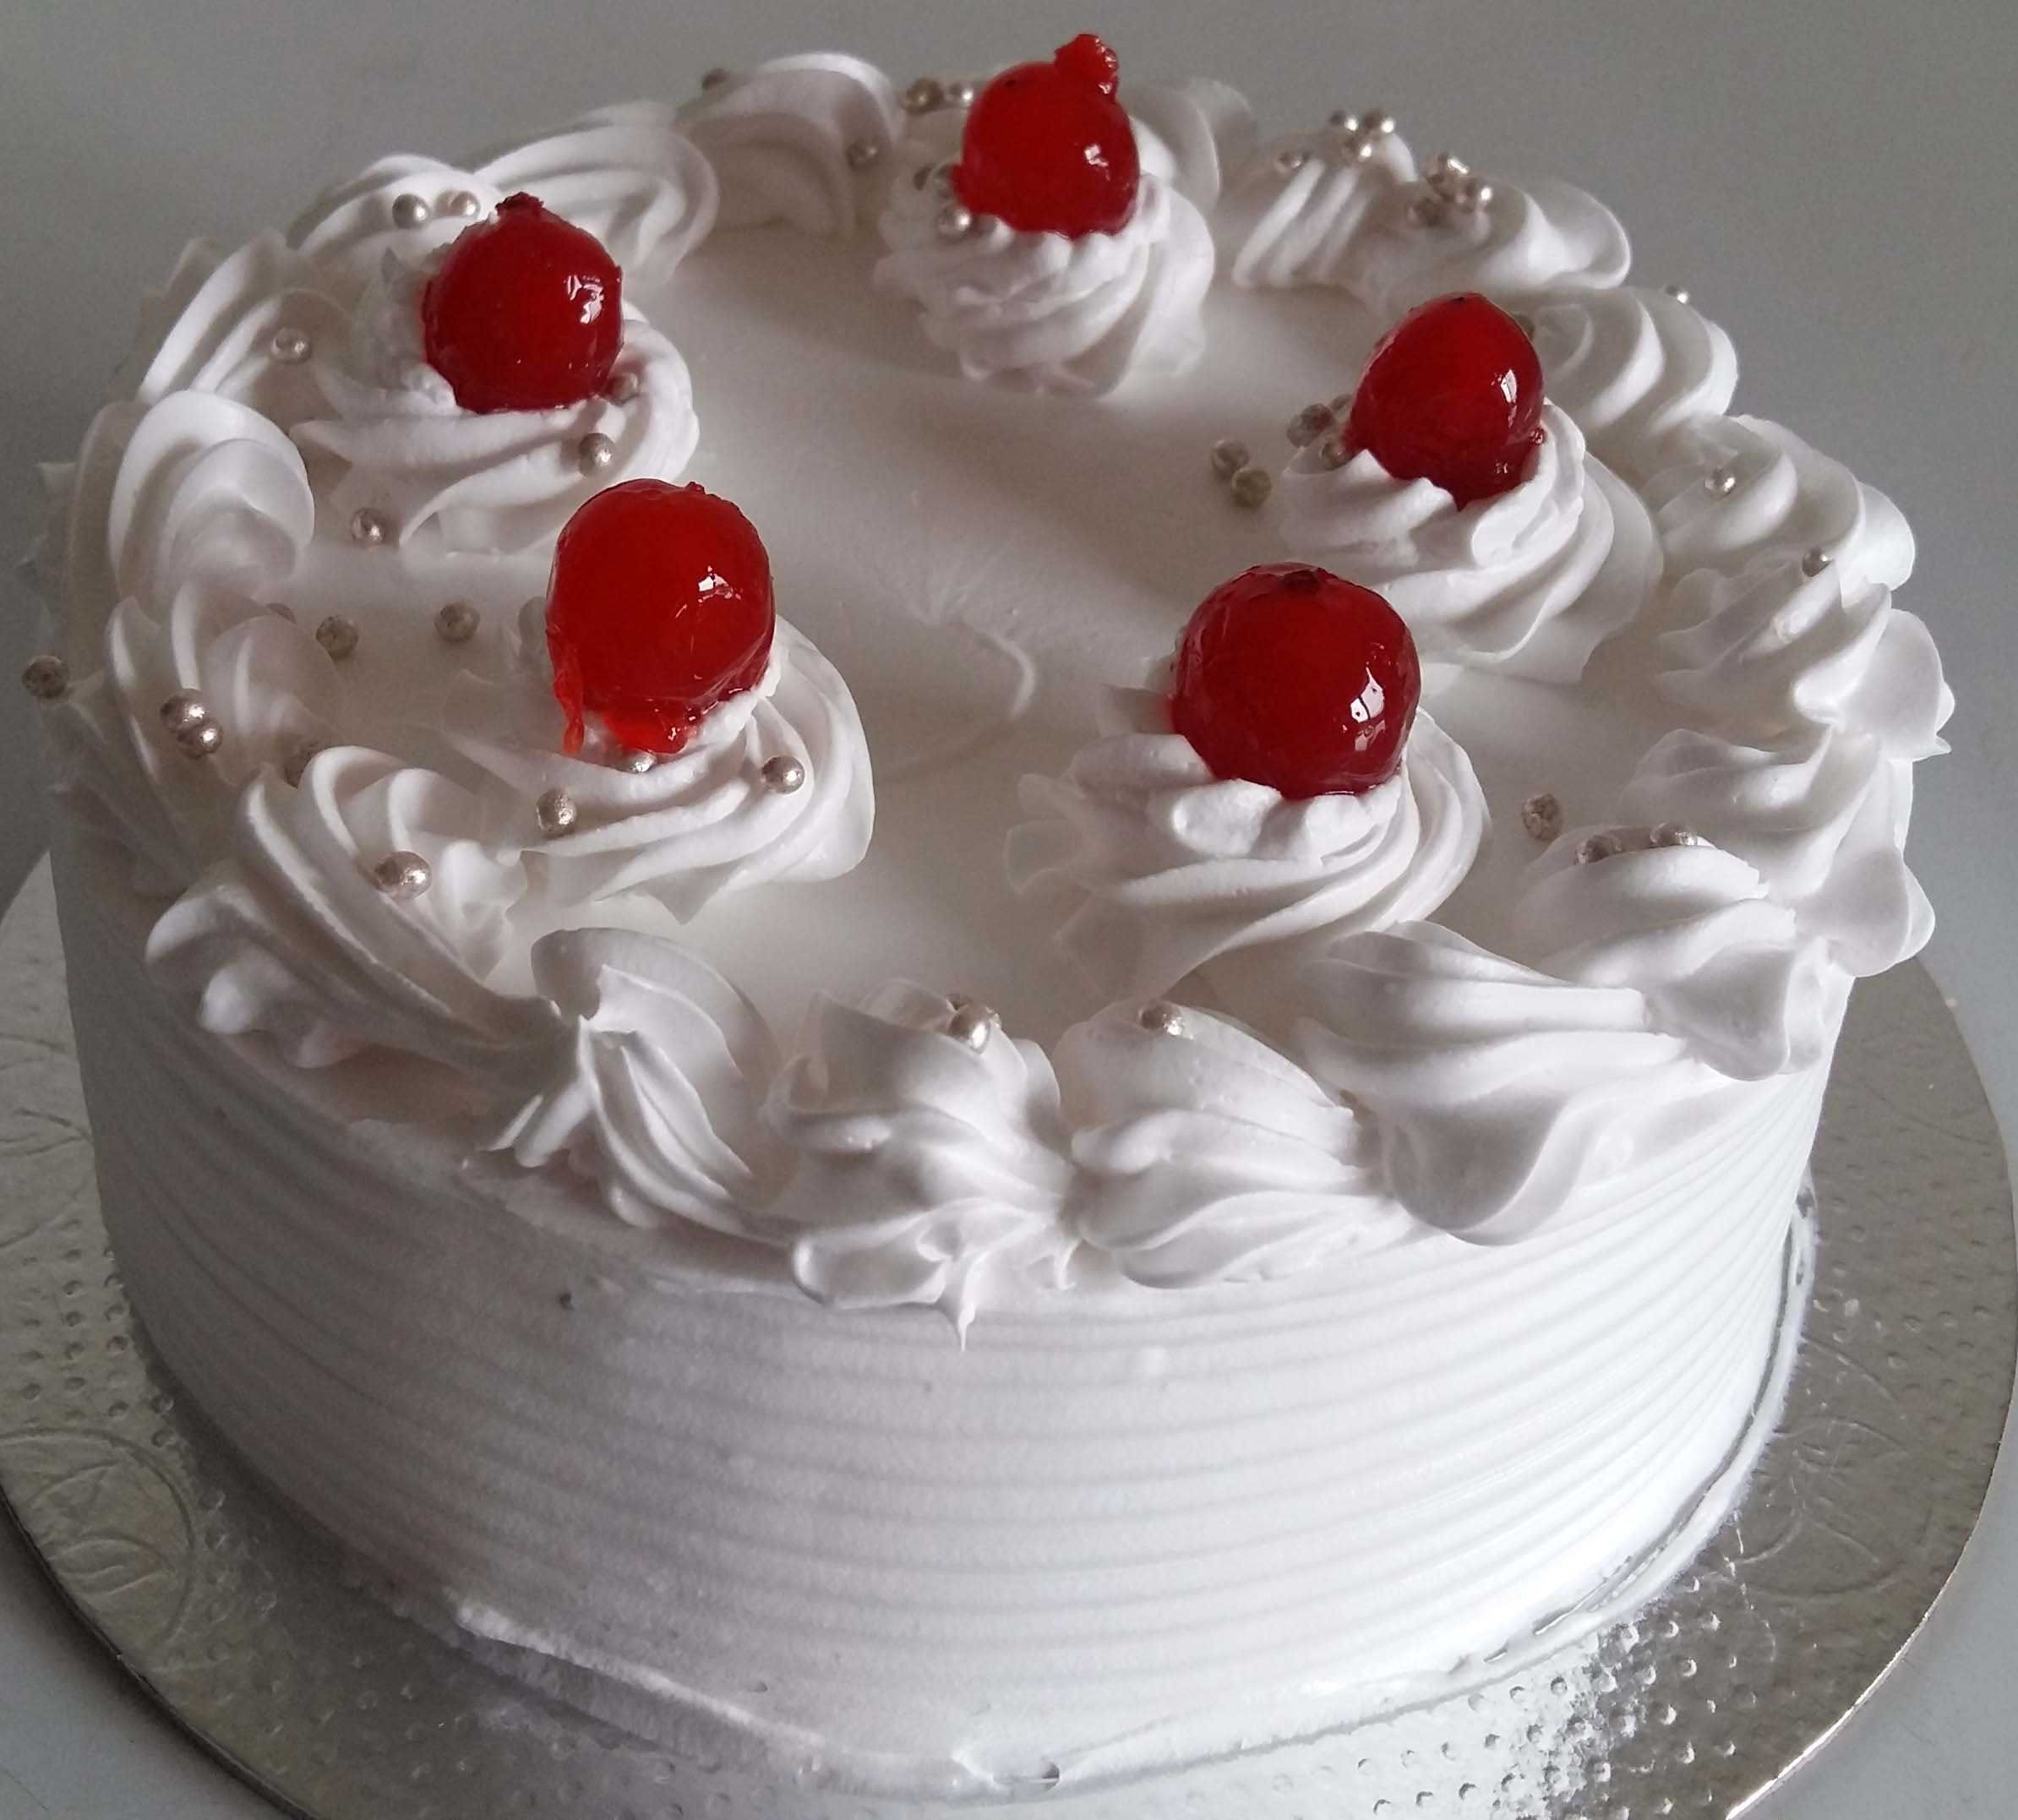 27 Excellent Image Of Order Birthday Cakes Online Vanilla Cake